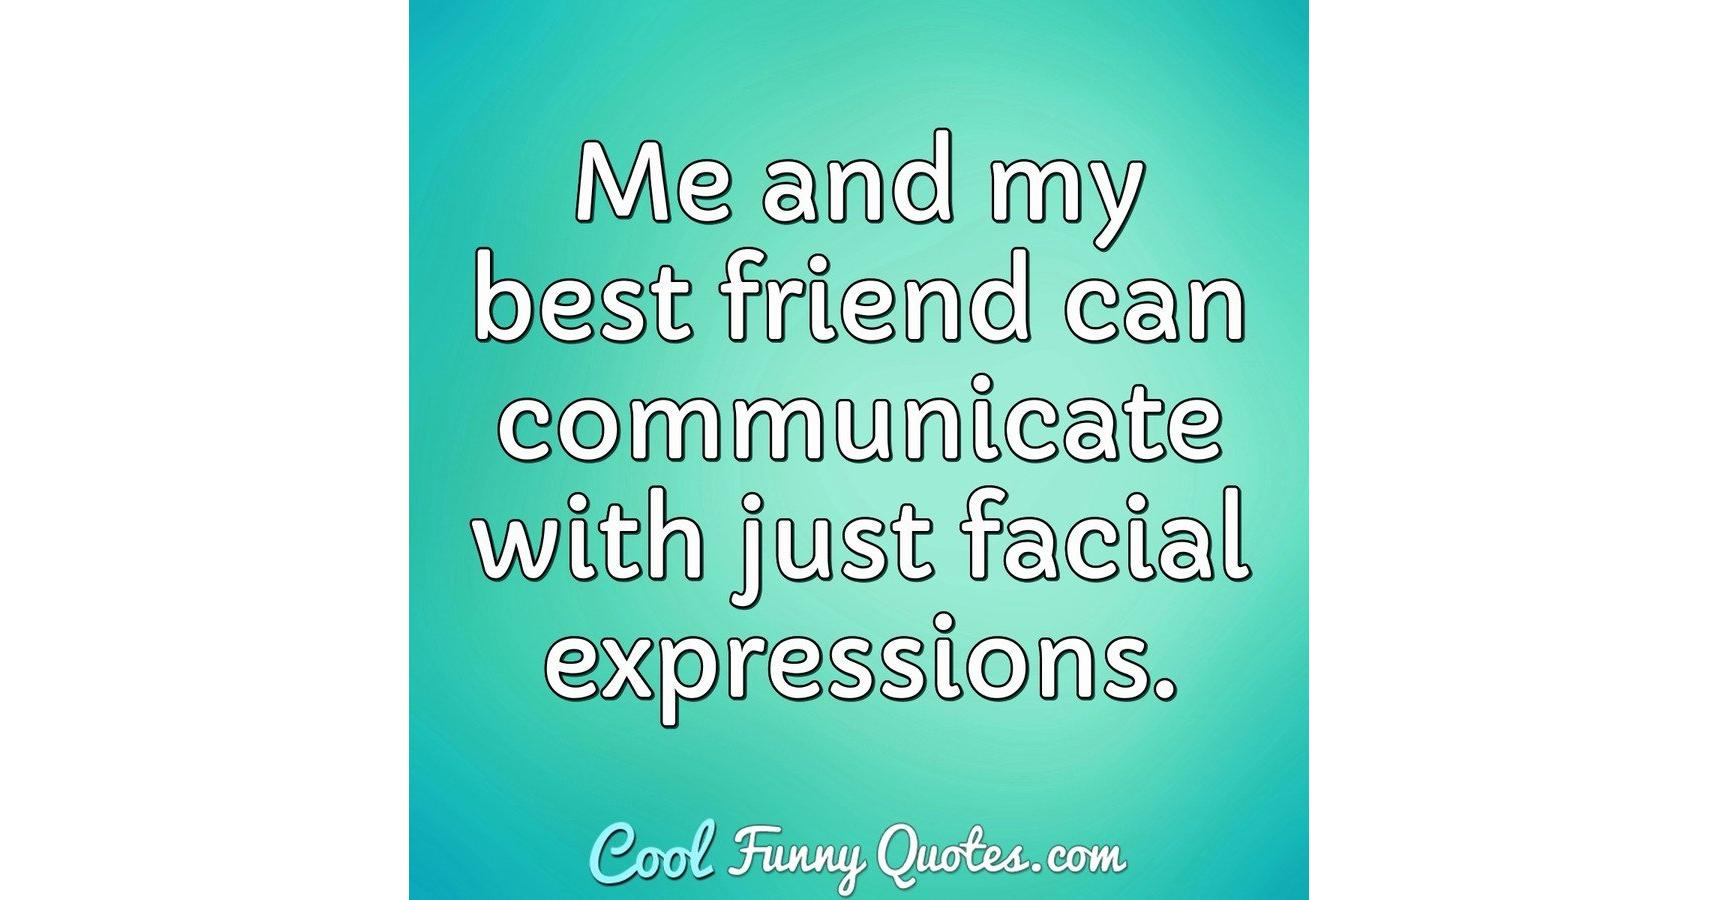 Me And My Best Friend Can Communicate With Just Facial